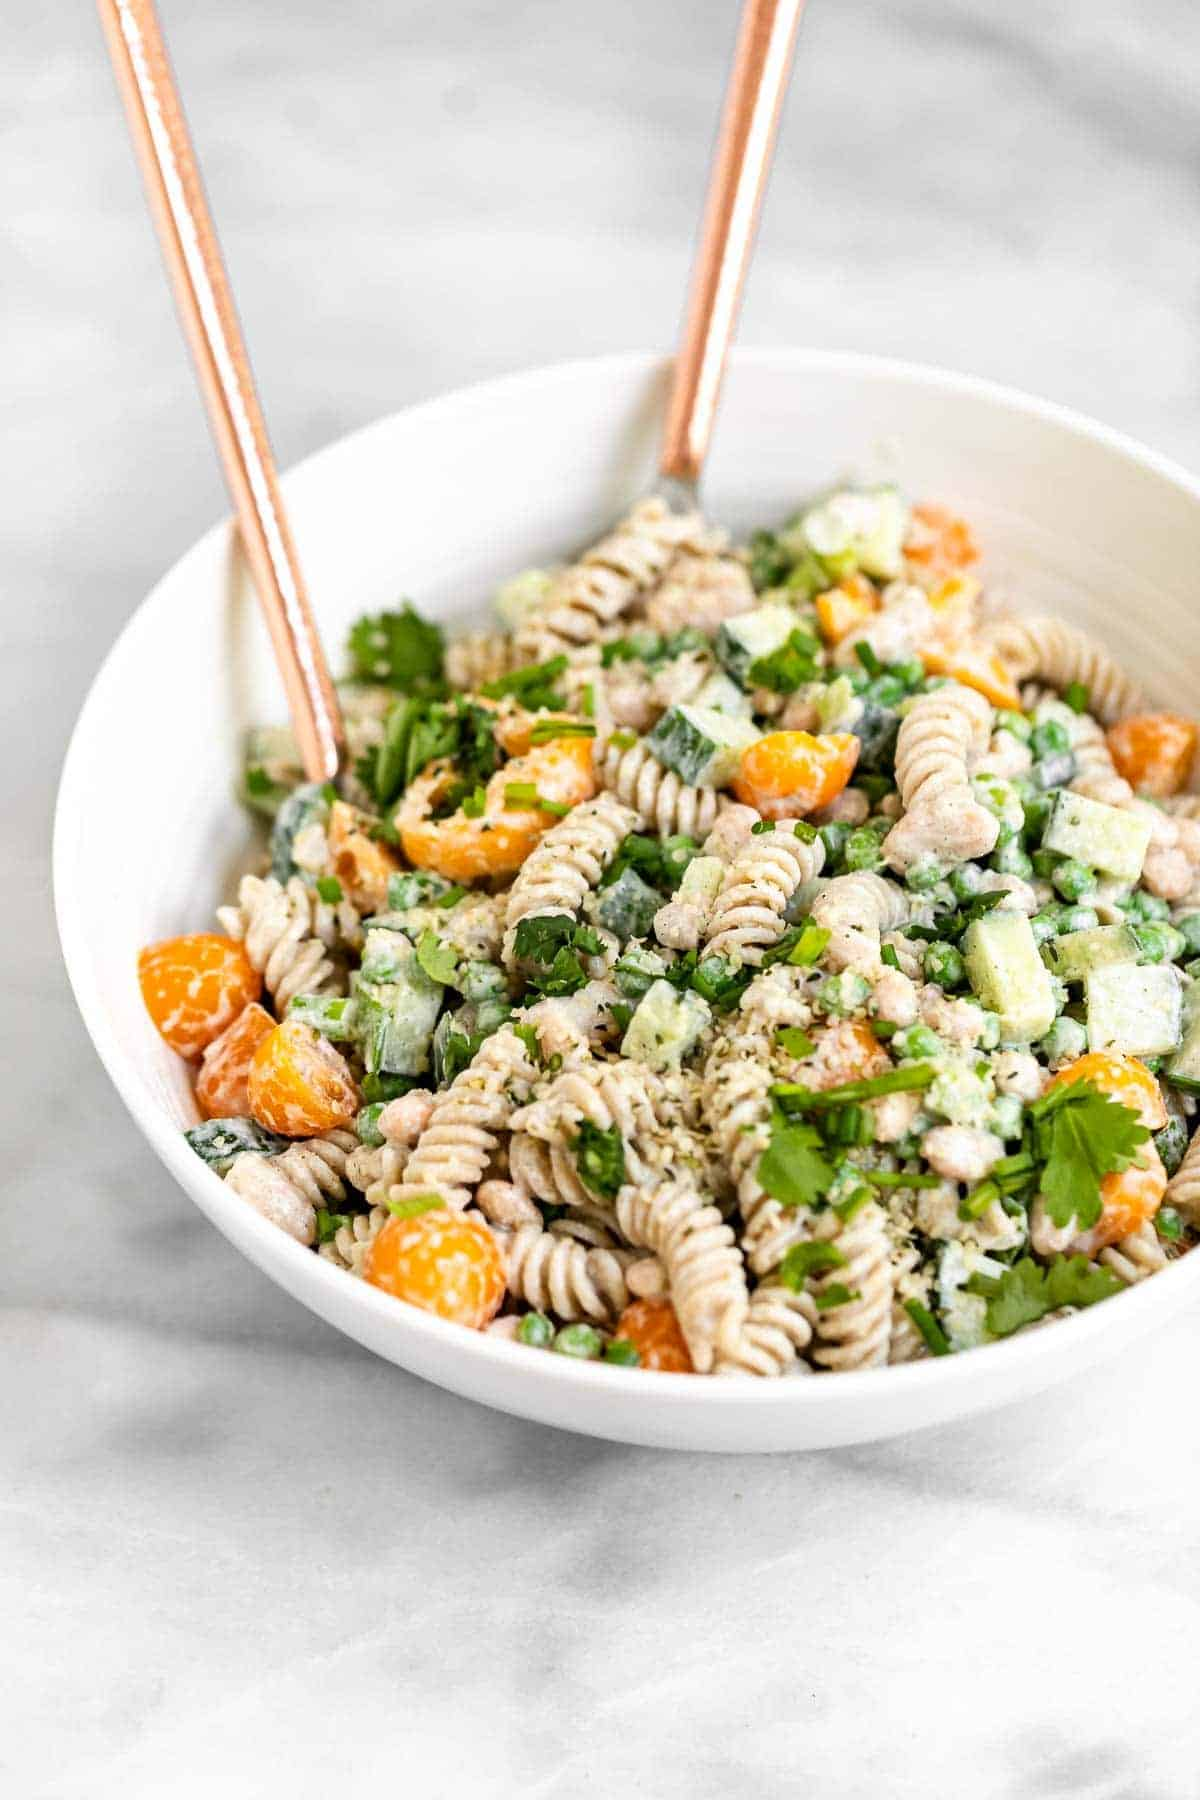 pasta salad in a white bowl with spoons on the side